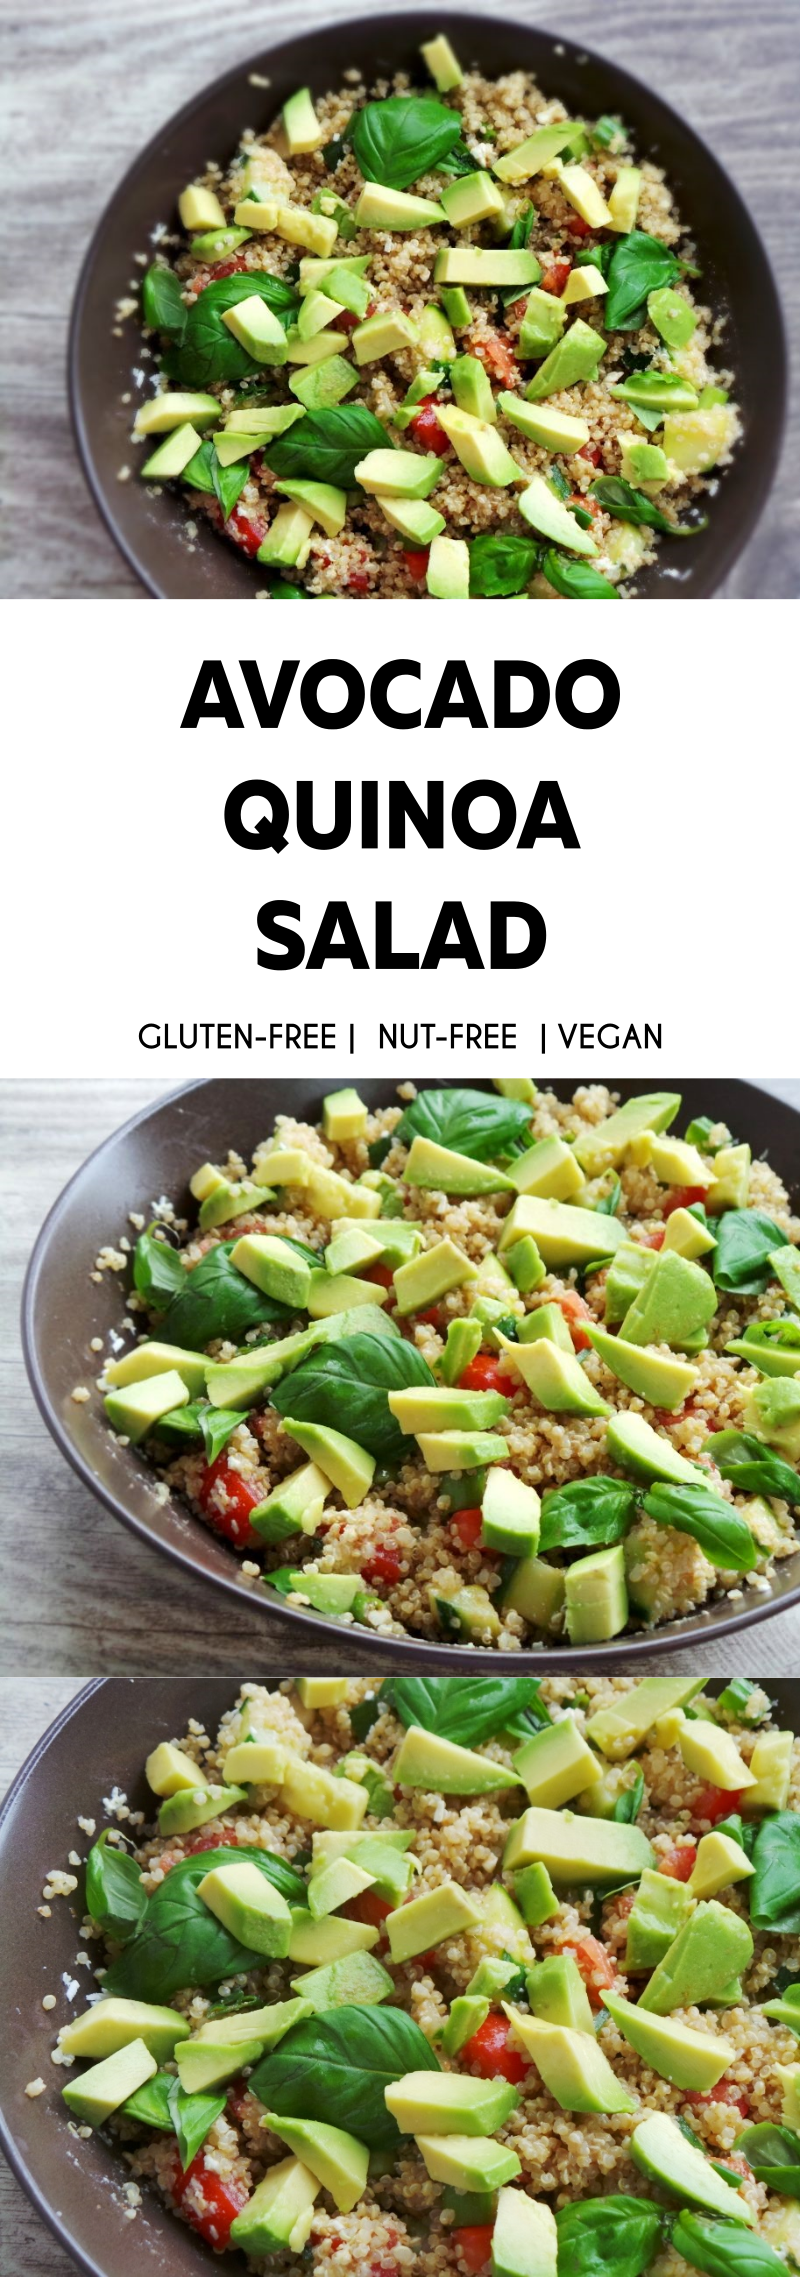 Healthy quinoa summer salad beauty bites quinoa and avocado salad recipe that youll want to eat every day this forumfinder Images